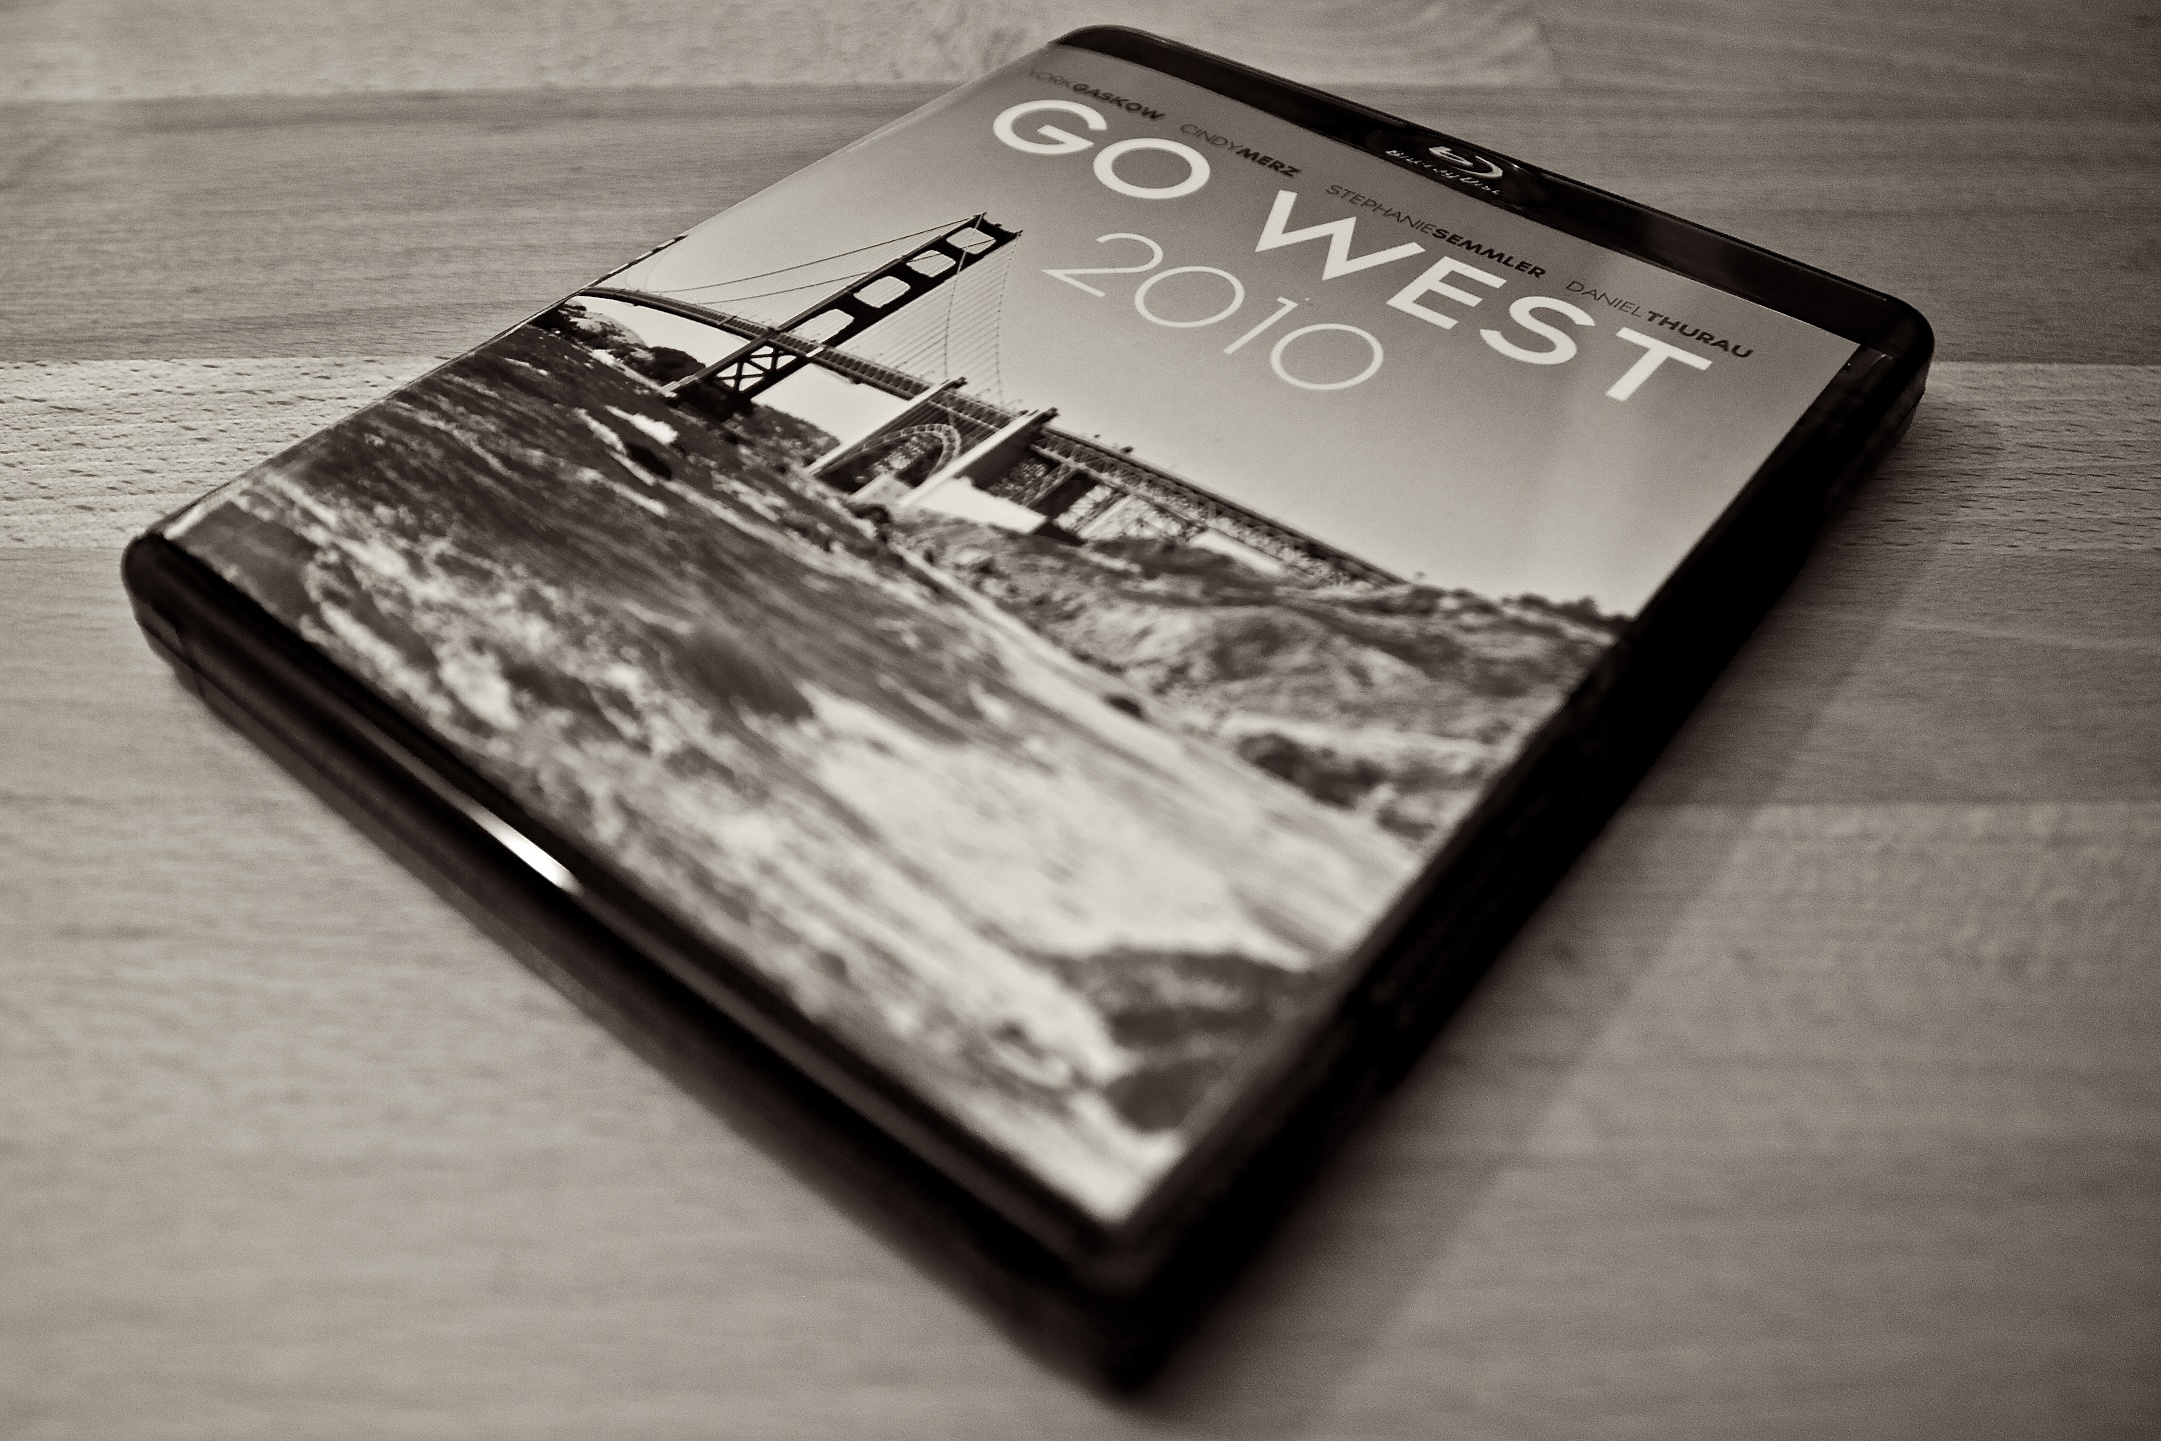 Go West 2010 BluRay